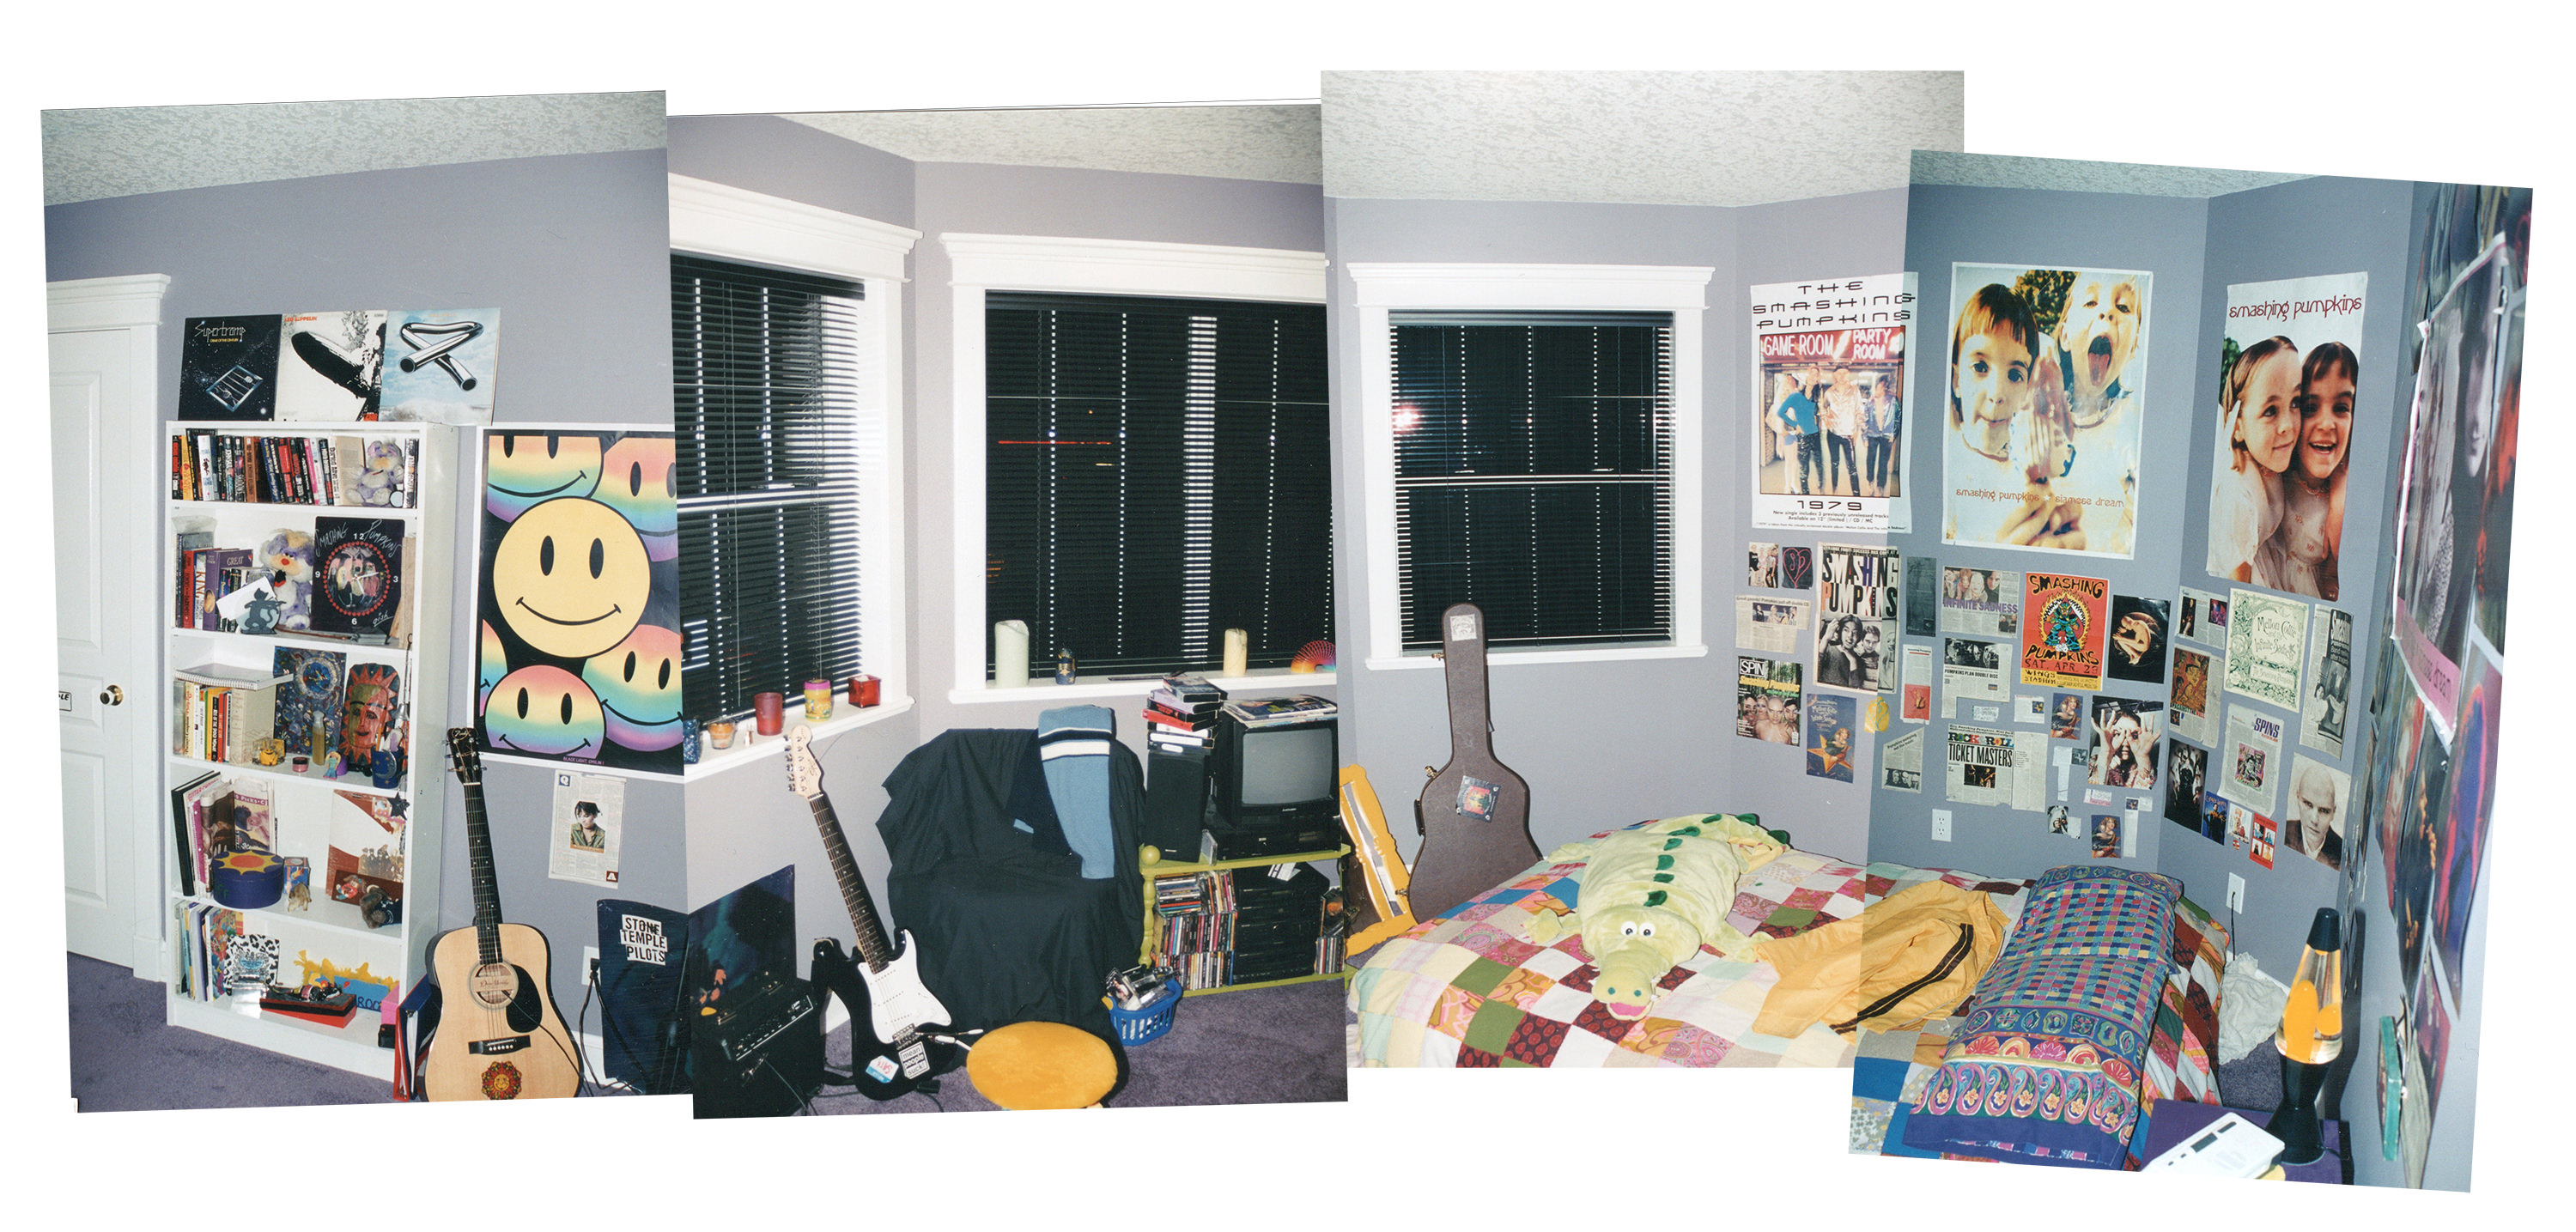 Sara's High School Bedroom